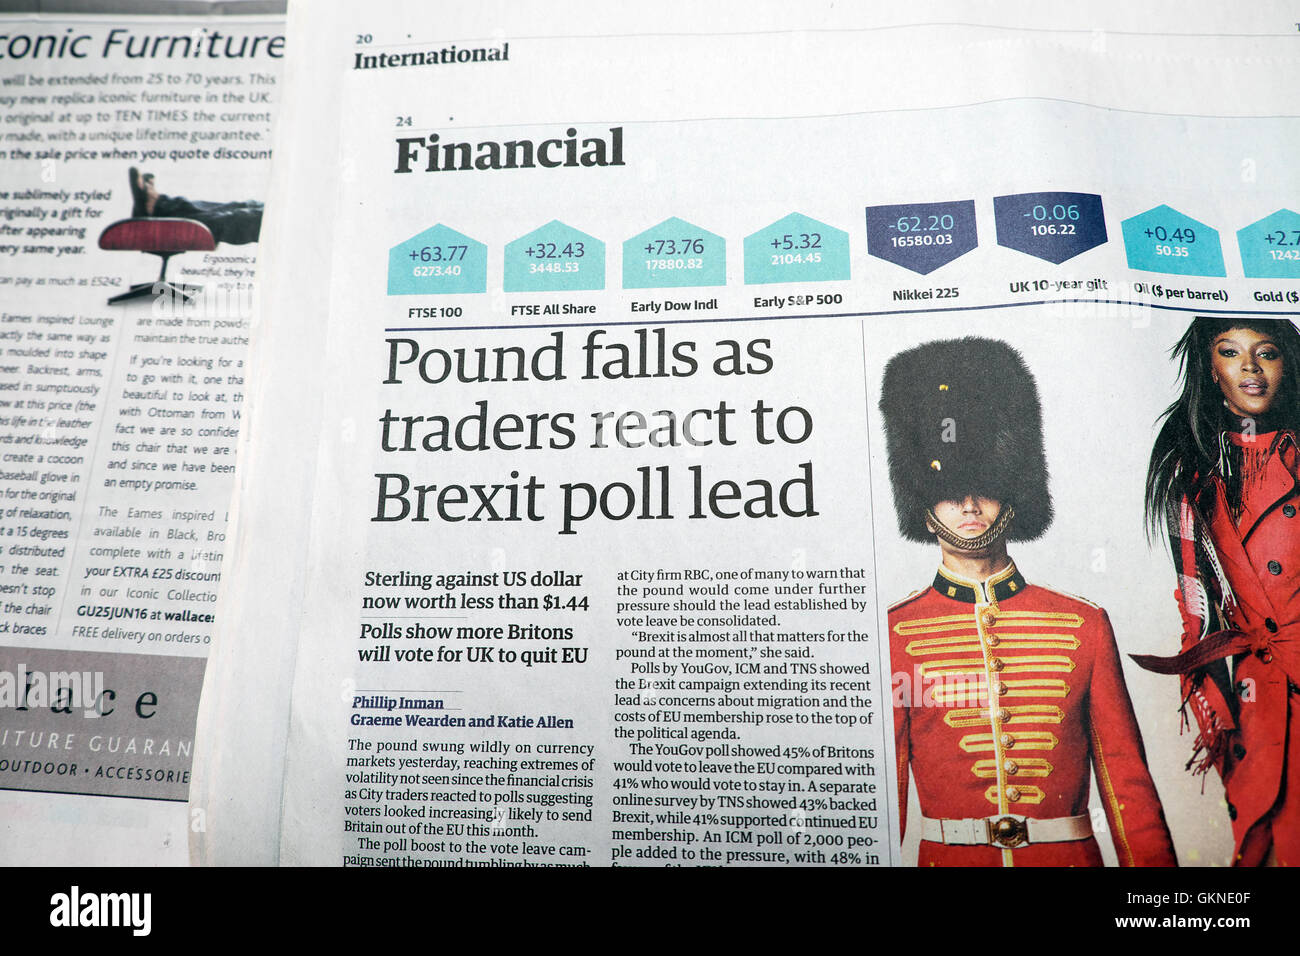 Guardian newspaper financial article before the Brexit vote  'Pound falls as traders react to Brexit poll lead' - Stock Image